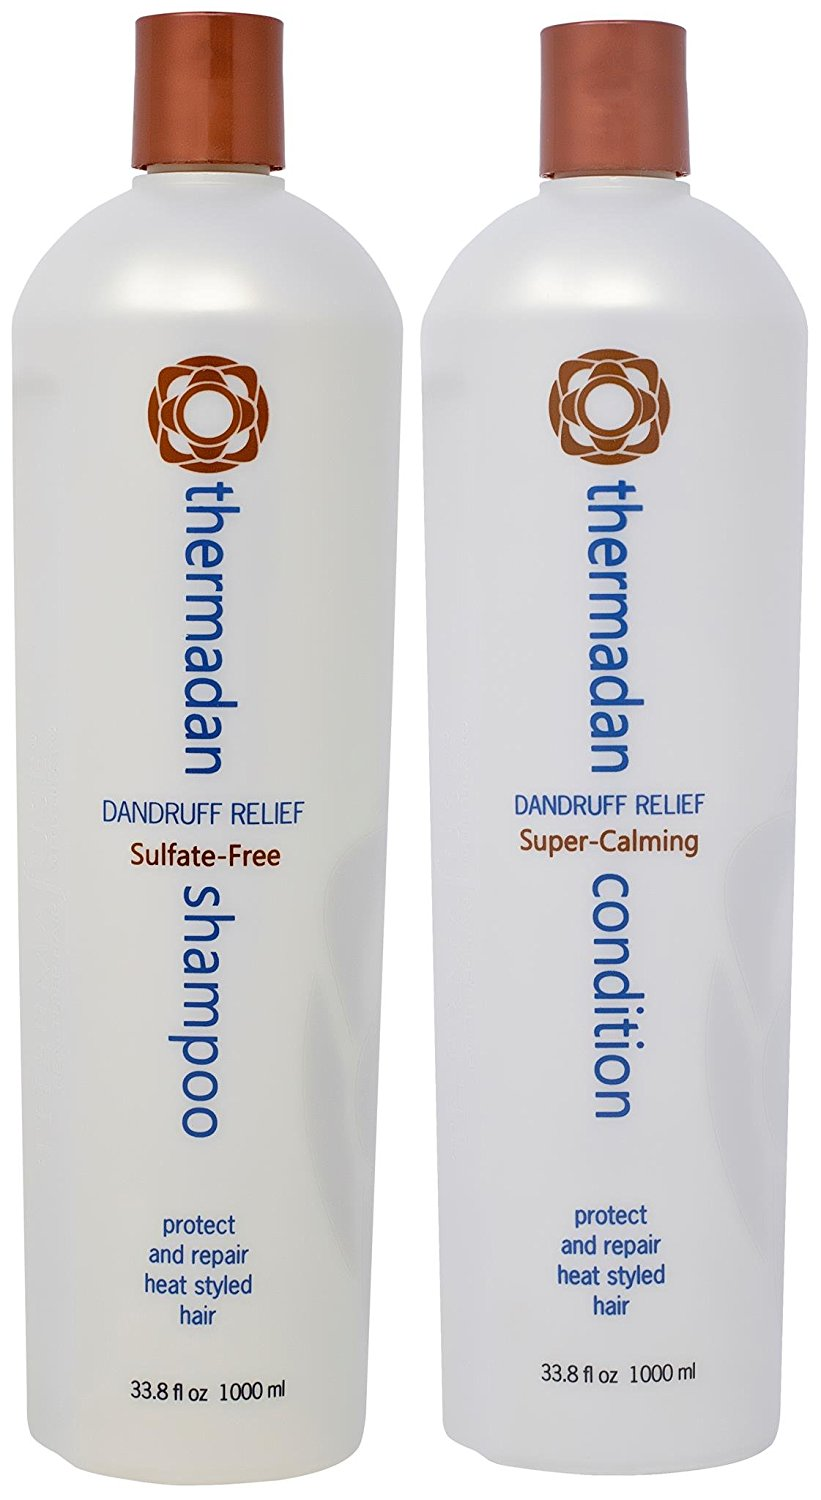 Other Hair Care & Styling Reasonable Thermafuse Condition Thermadan 33.8oz